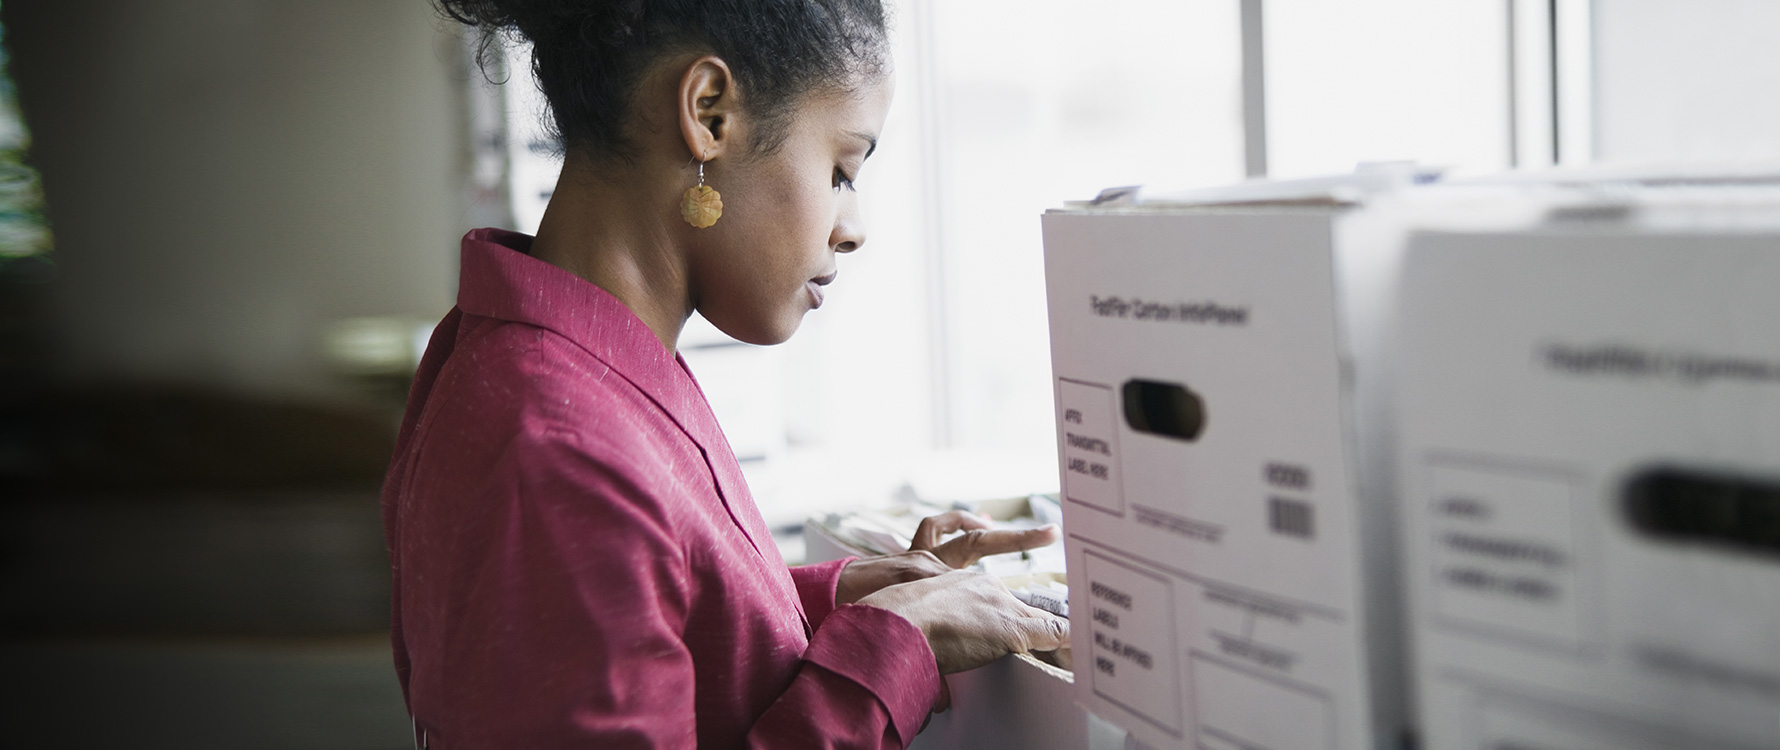 A woman in a pink blazer sorting through legal documents